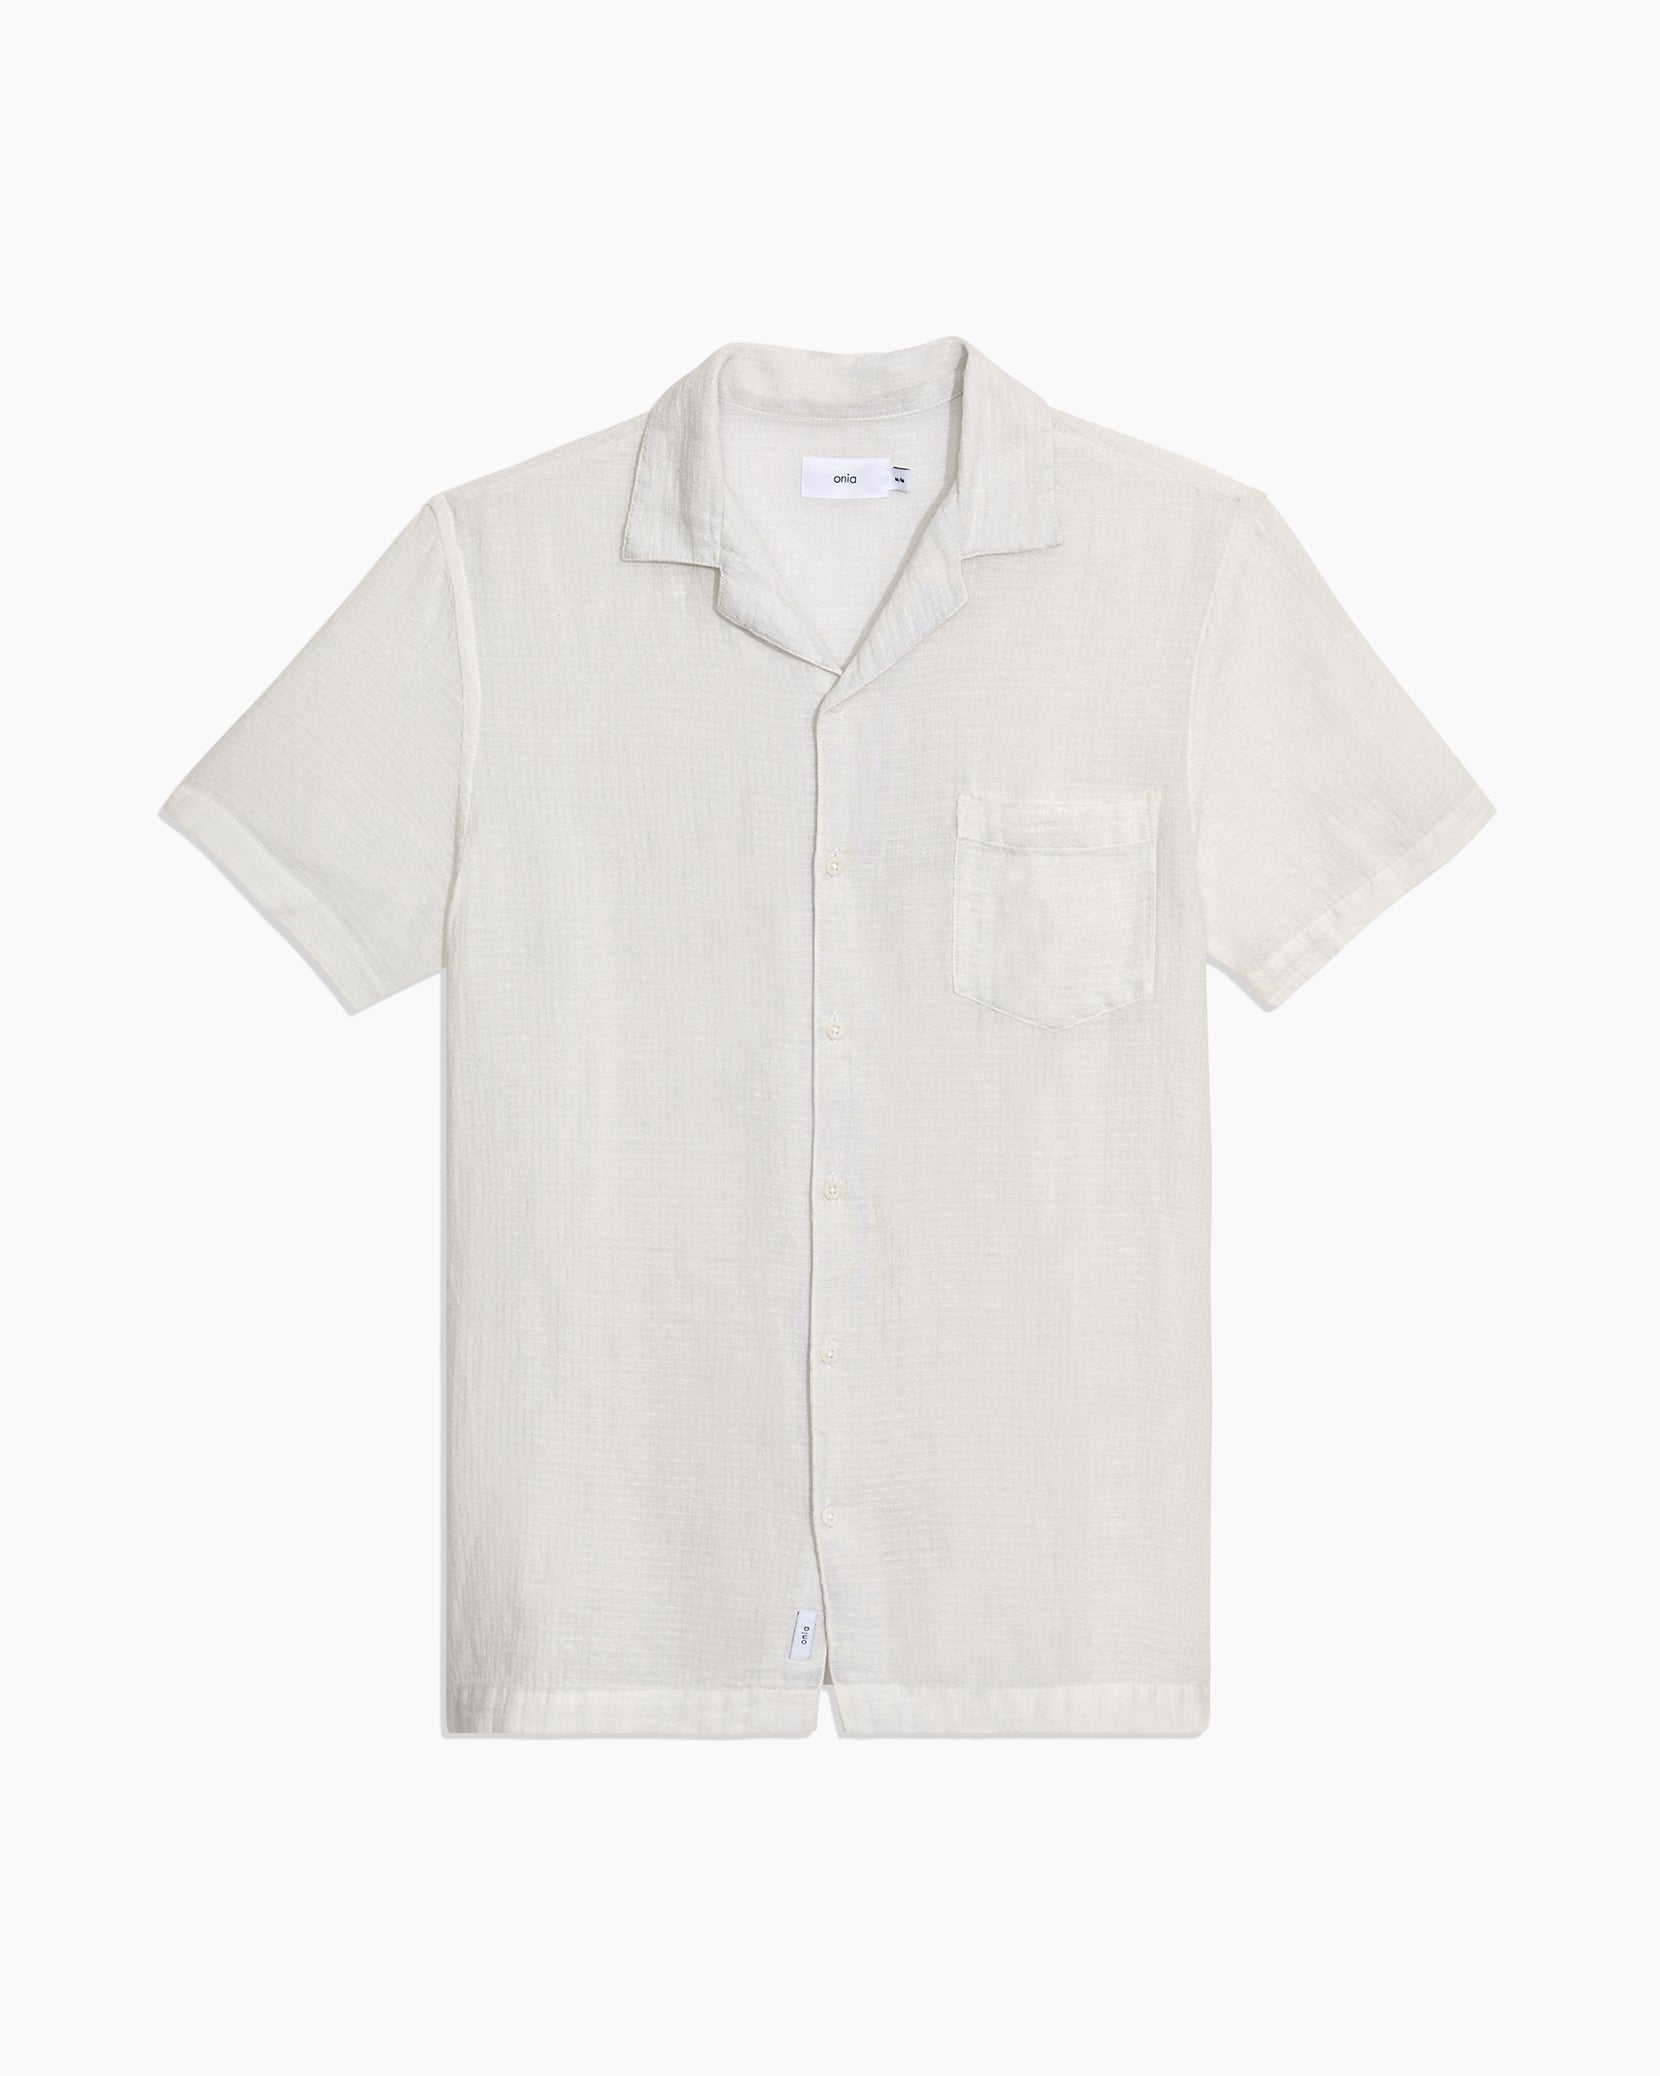 Vacation Checked Dobby Shirt in White - 1 - Onia